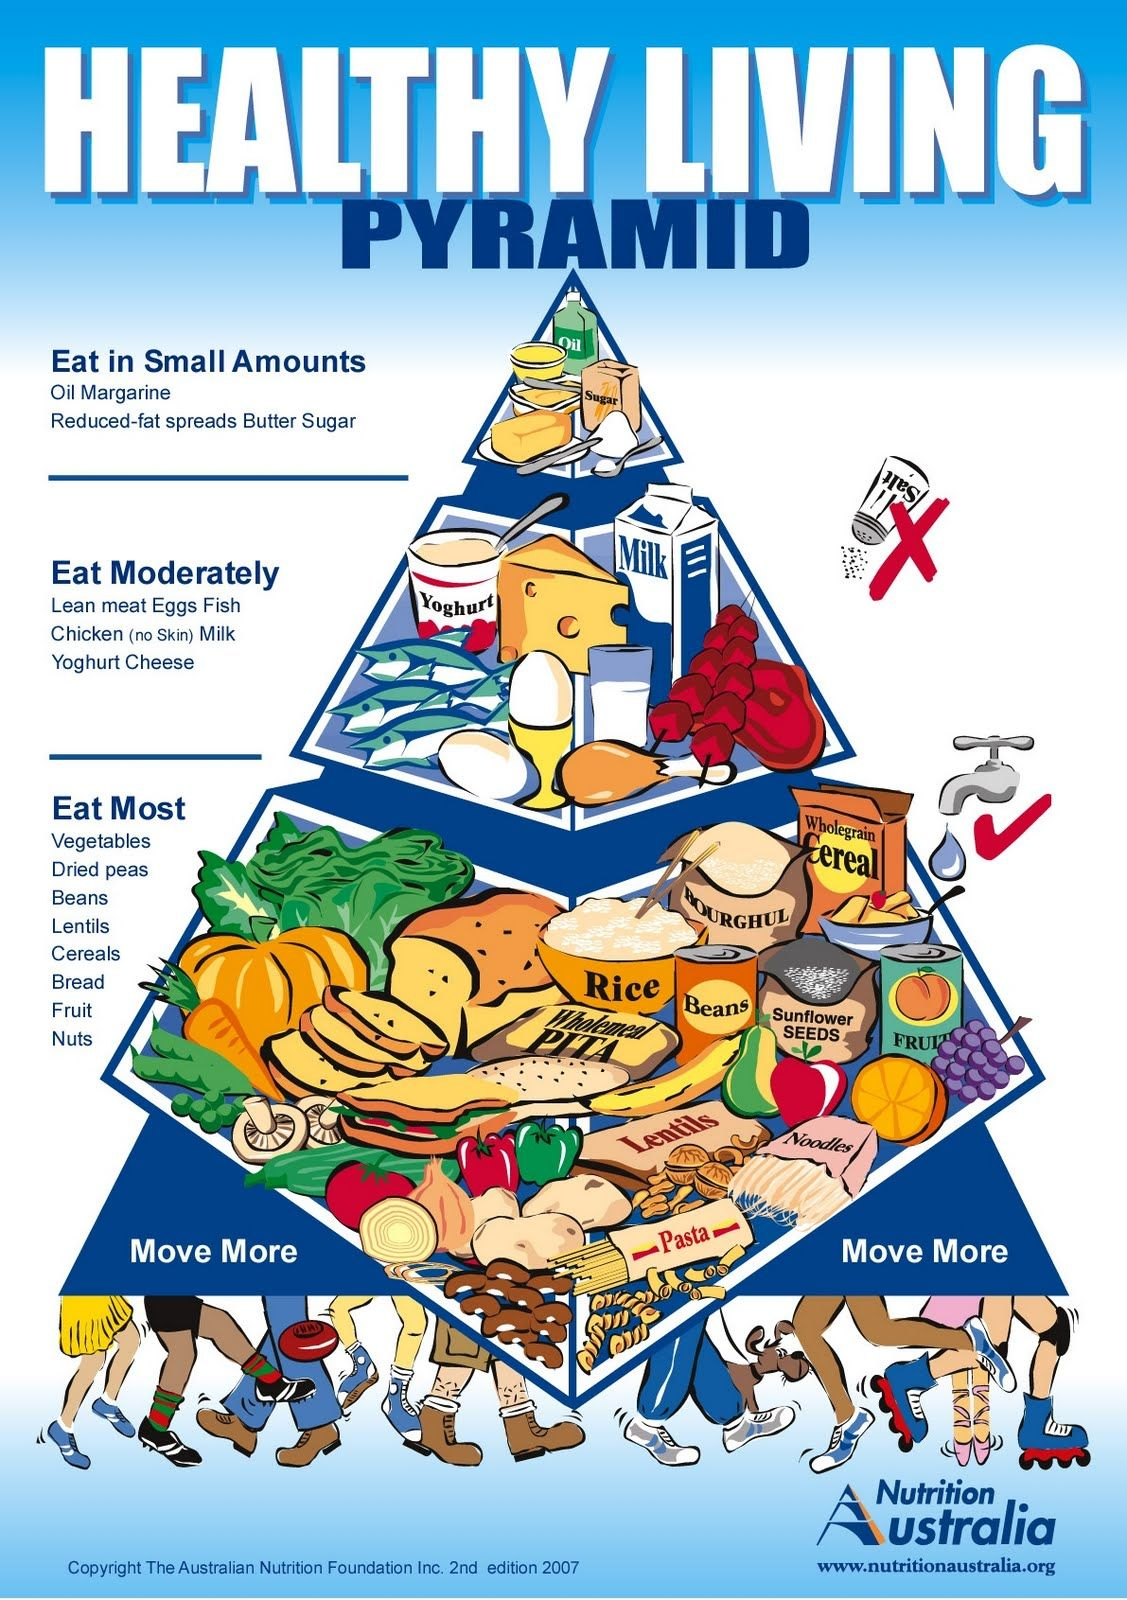 Navigating The Food Pyramid For A Healthier Me In 2019